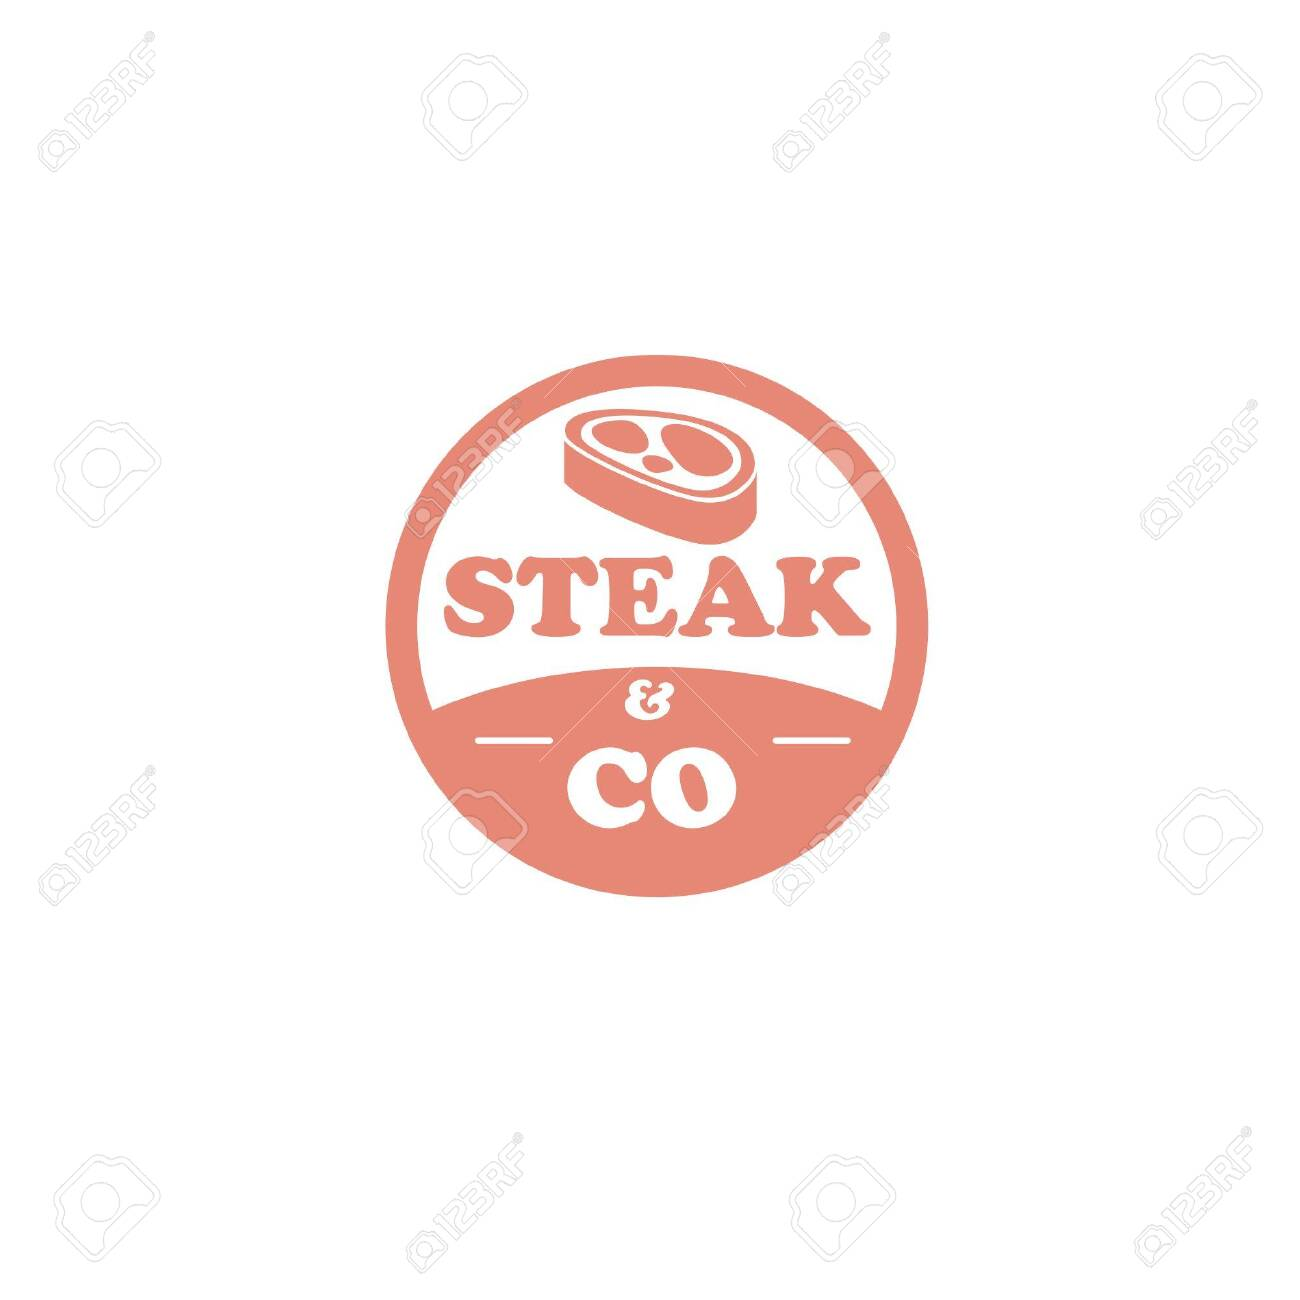 Stamp Shape Restaurant Logo With Meat And Simple Typography Isolated On White Background Good For Retro Restaurant Identity And Logo Or Promotional Purpose Ilustraciones Vectoriales Clip Art Vectorizado Libre De Derechos Image